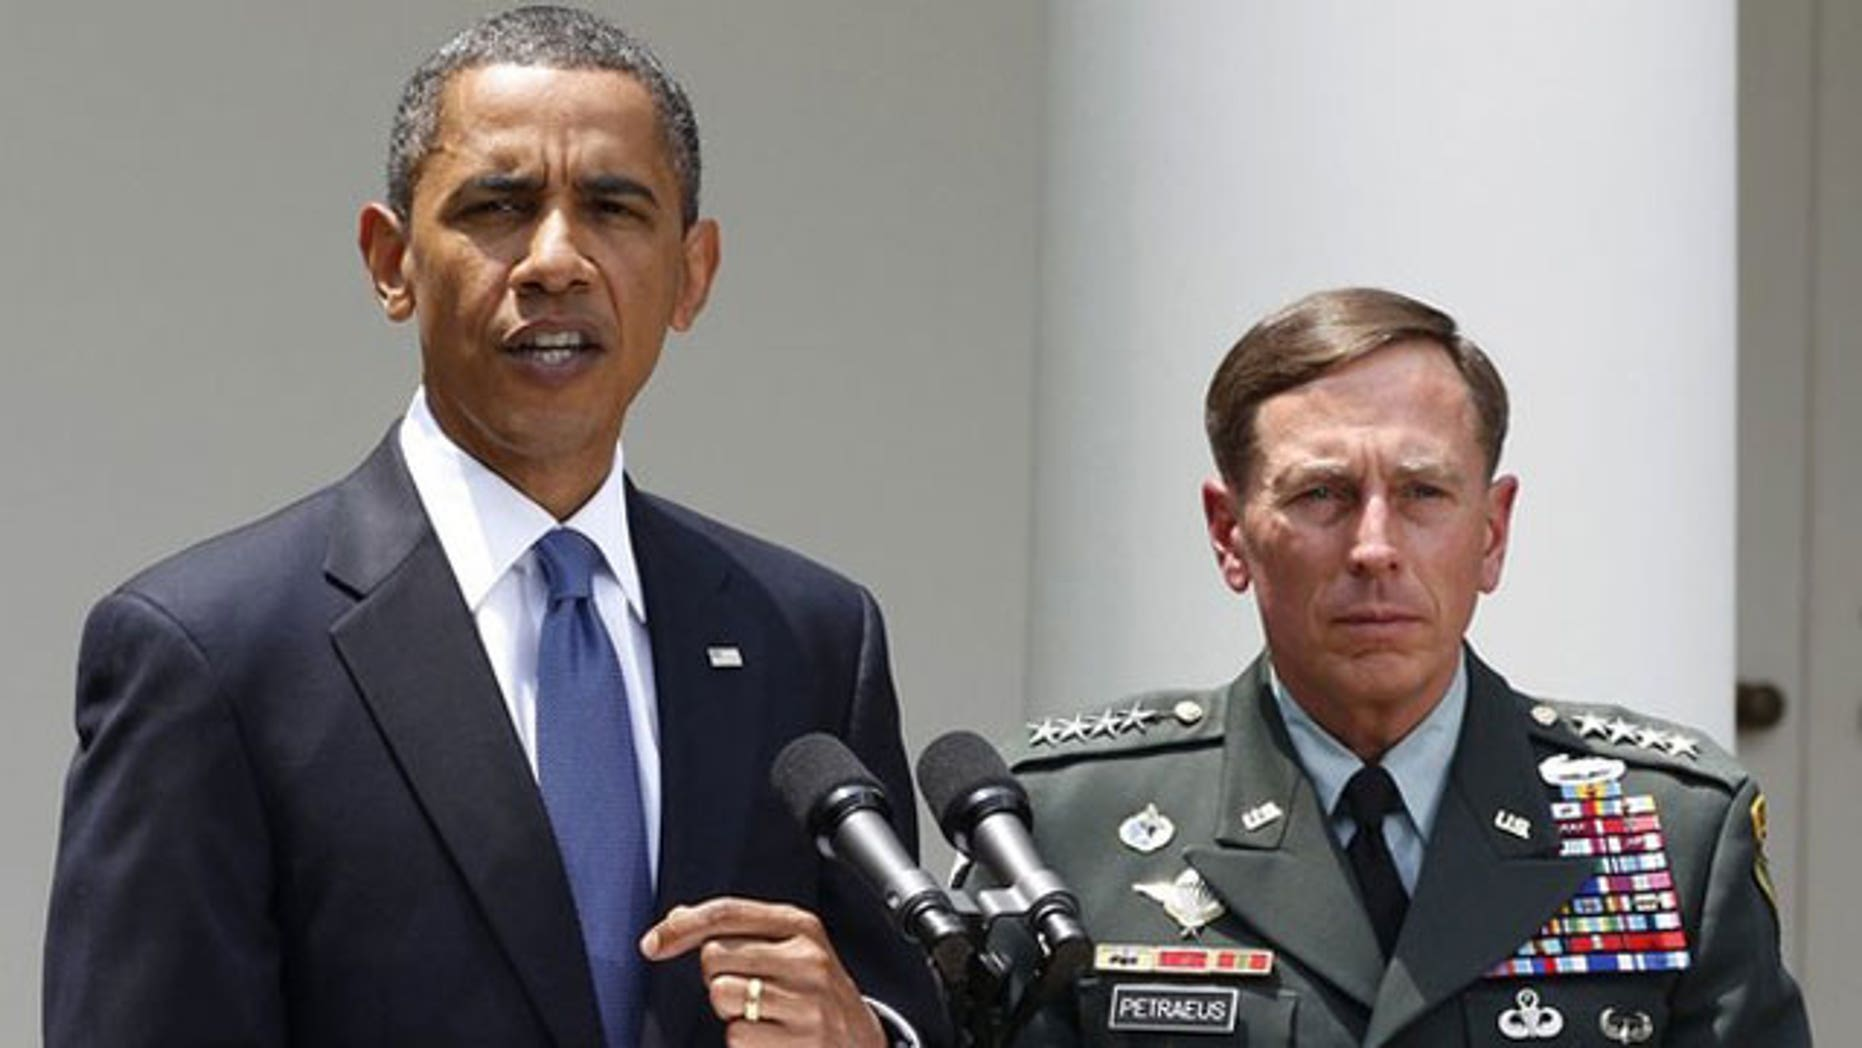 June 23: President Obama announces that Gen. David Petraeus, right, will replace Gen. Stanley McChrystal as his top commander in Afghanistan while in the Rose Garden of the White House in Washington (Reuters).